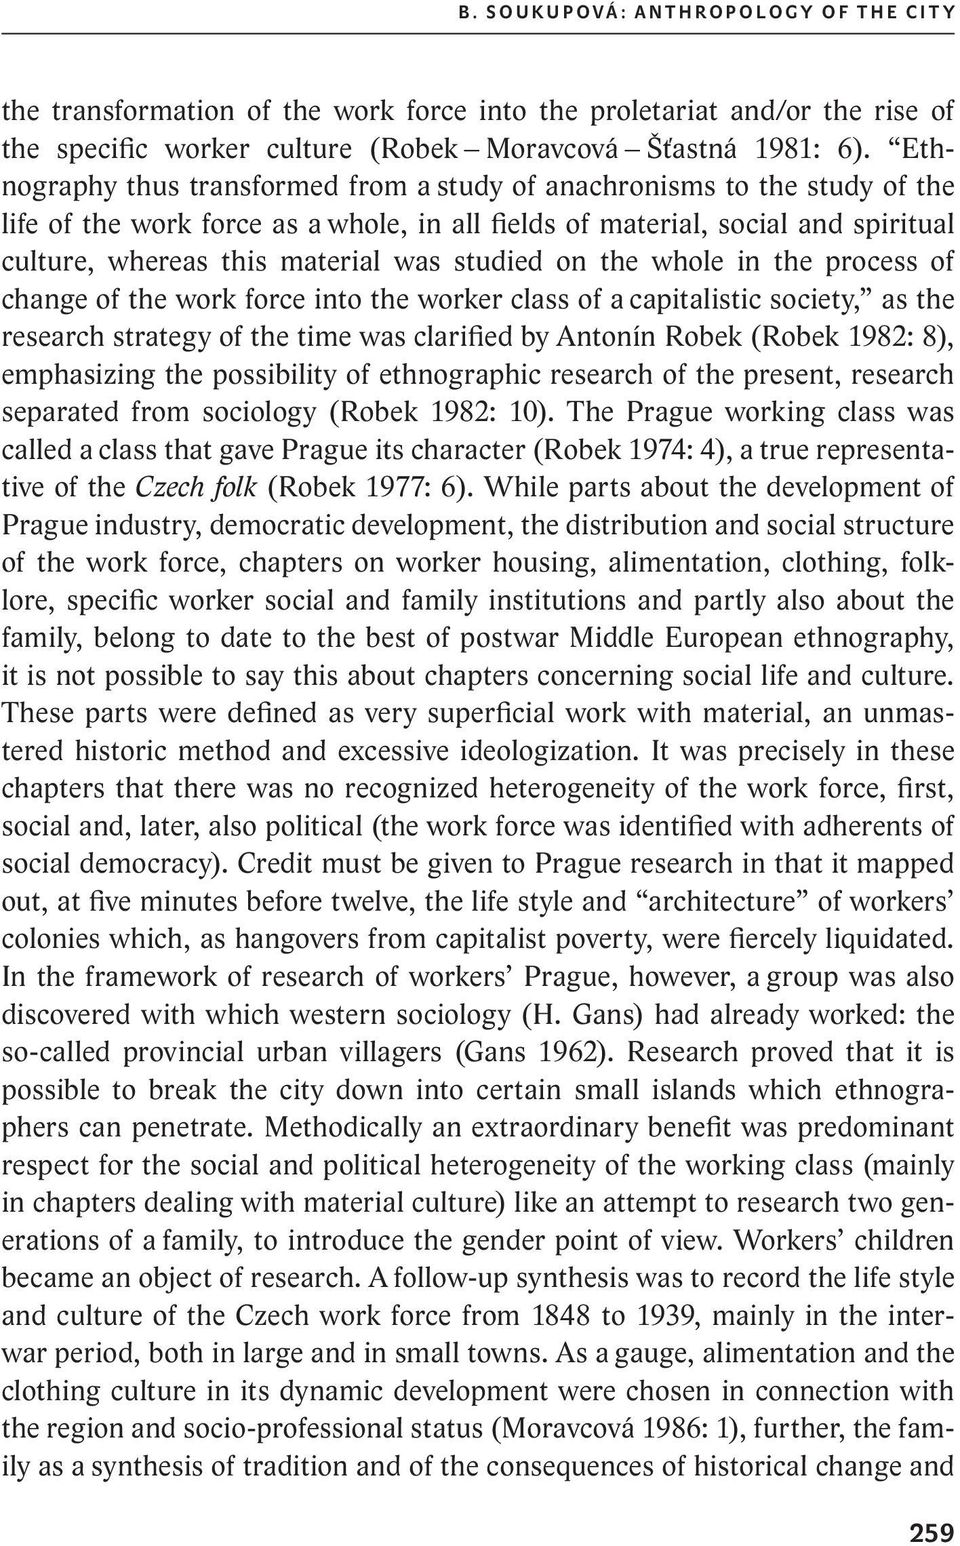 studied on the whole in the process of change of the work force into the worker class of a capitalistic society, as the research strategy of the time was clarified by Antonín Robek (Robek 1982: 8),